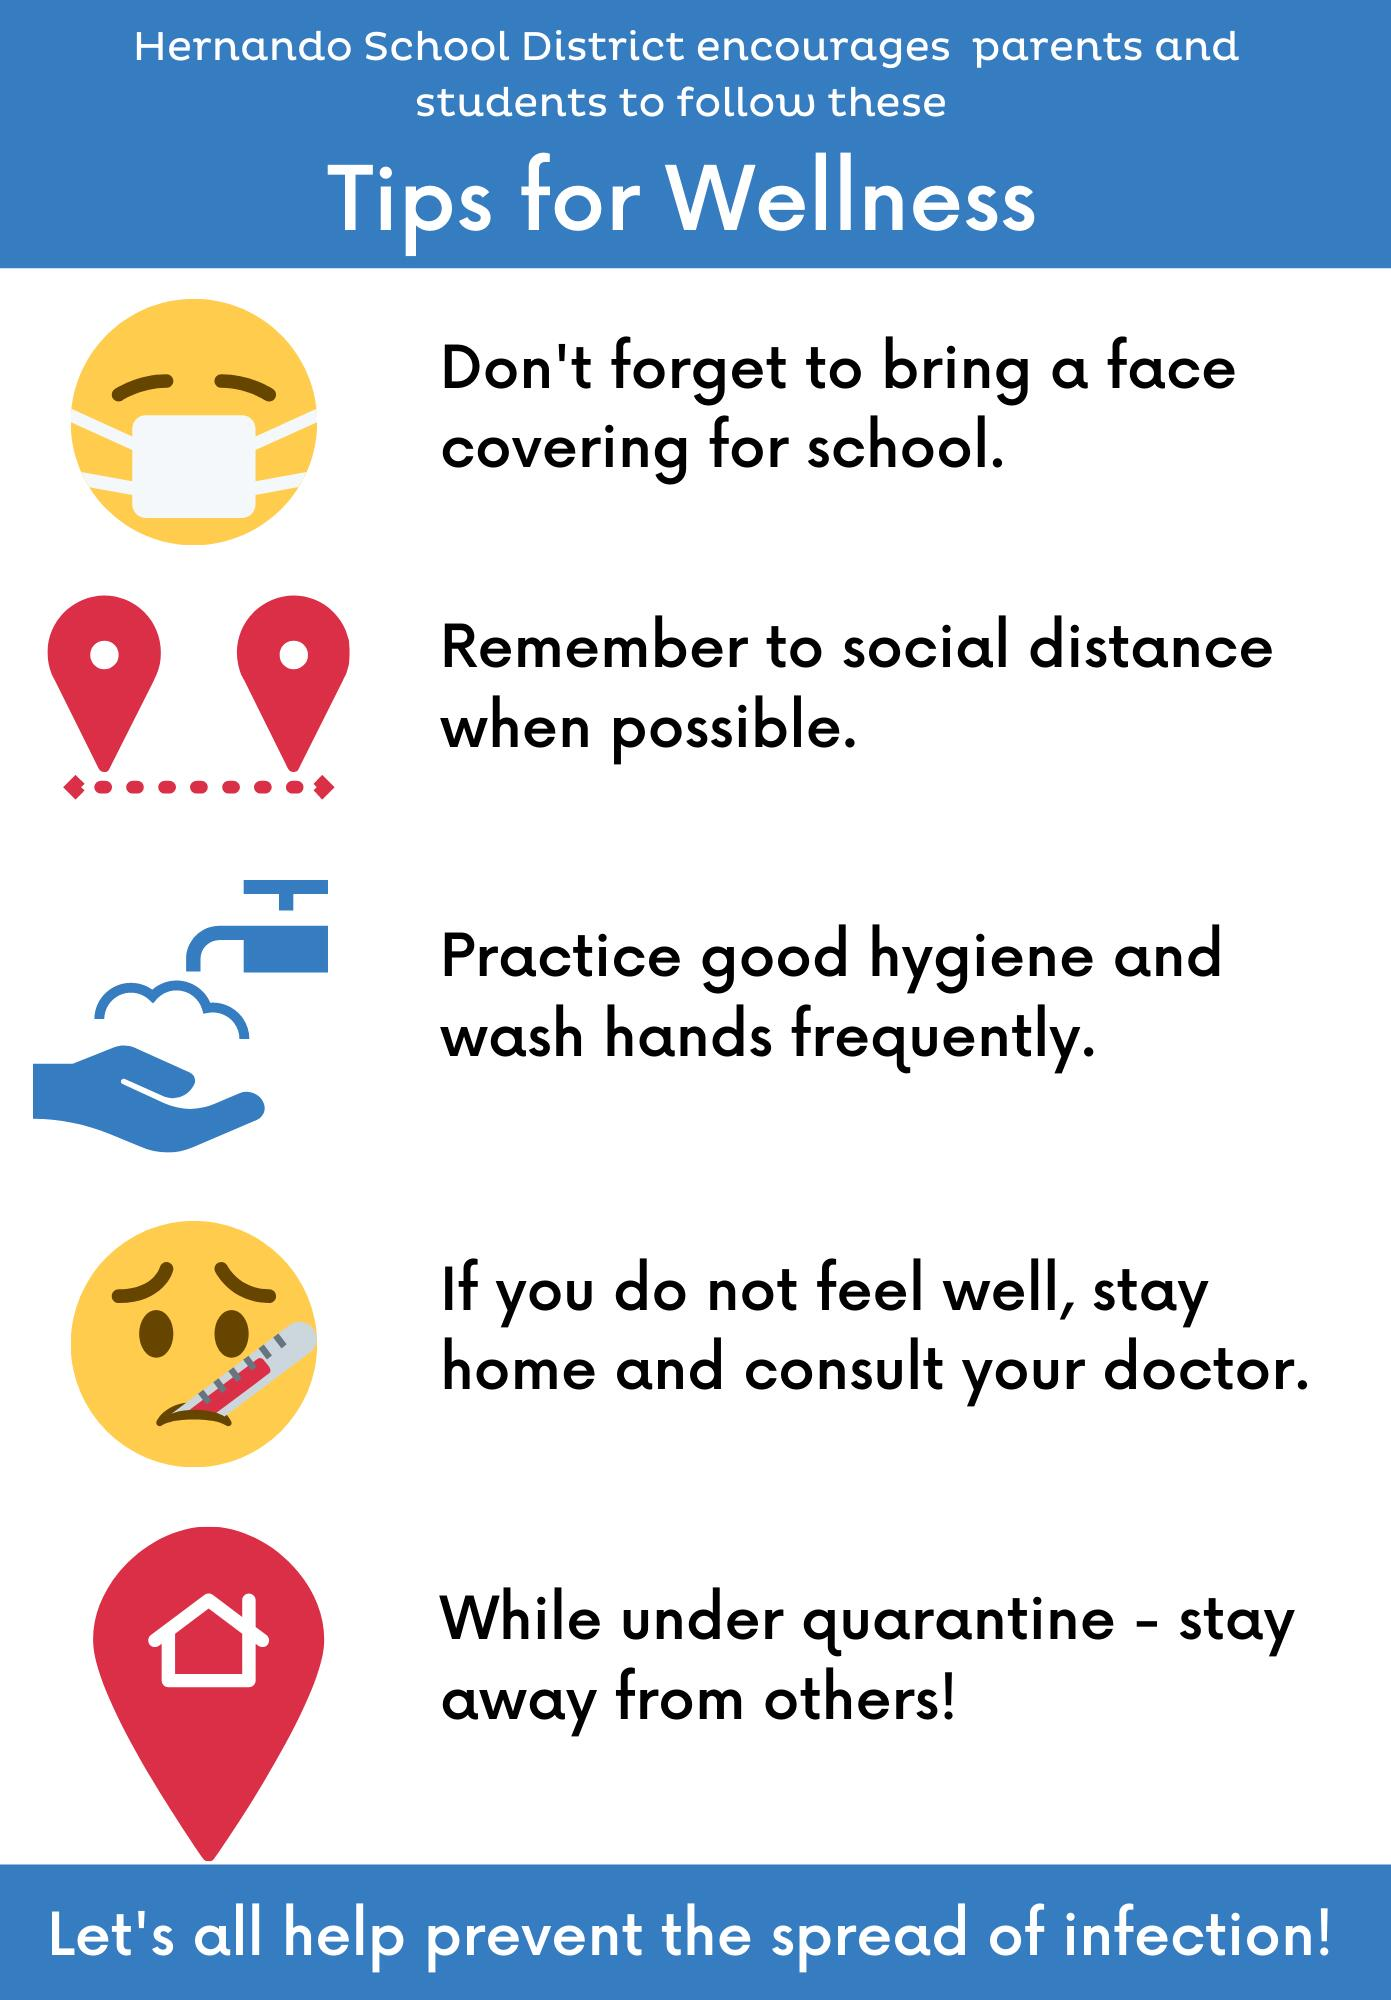 Tips for Wellness graphic